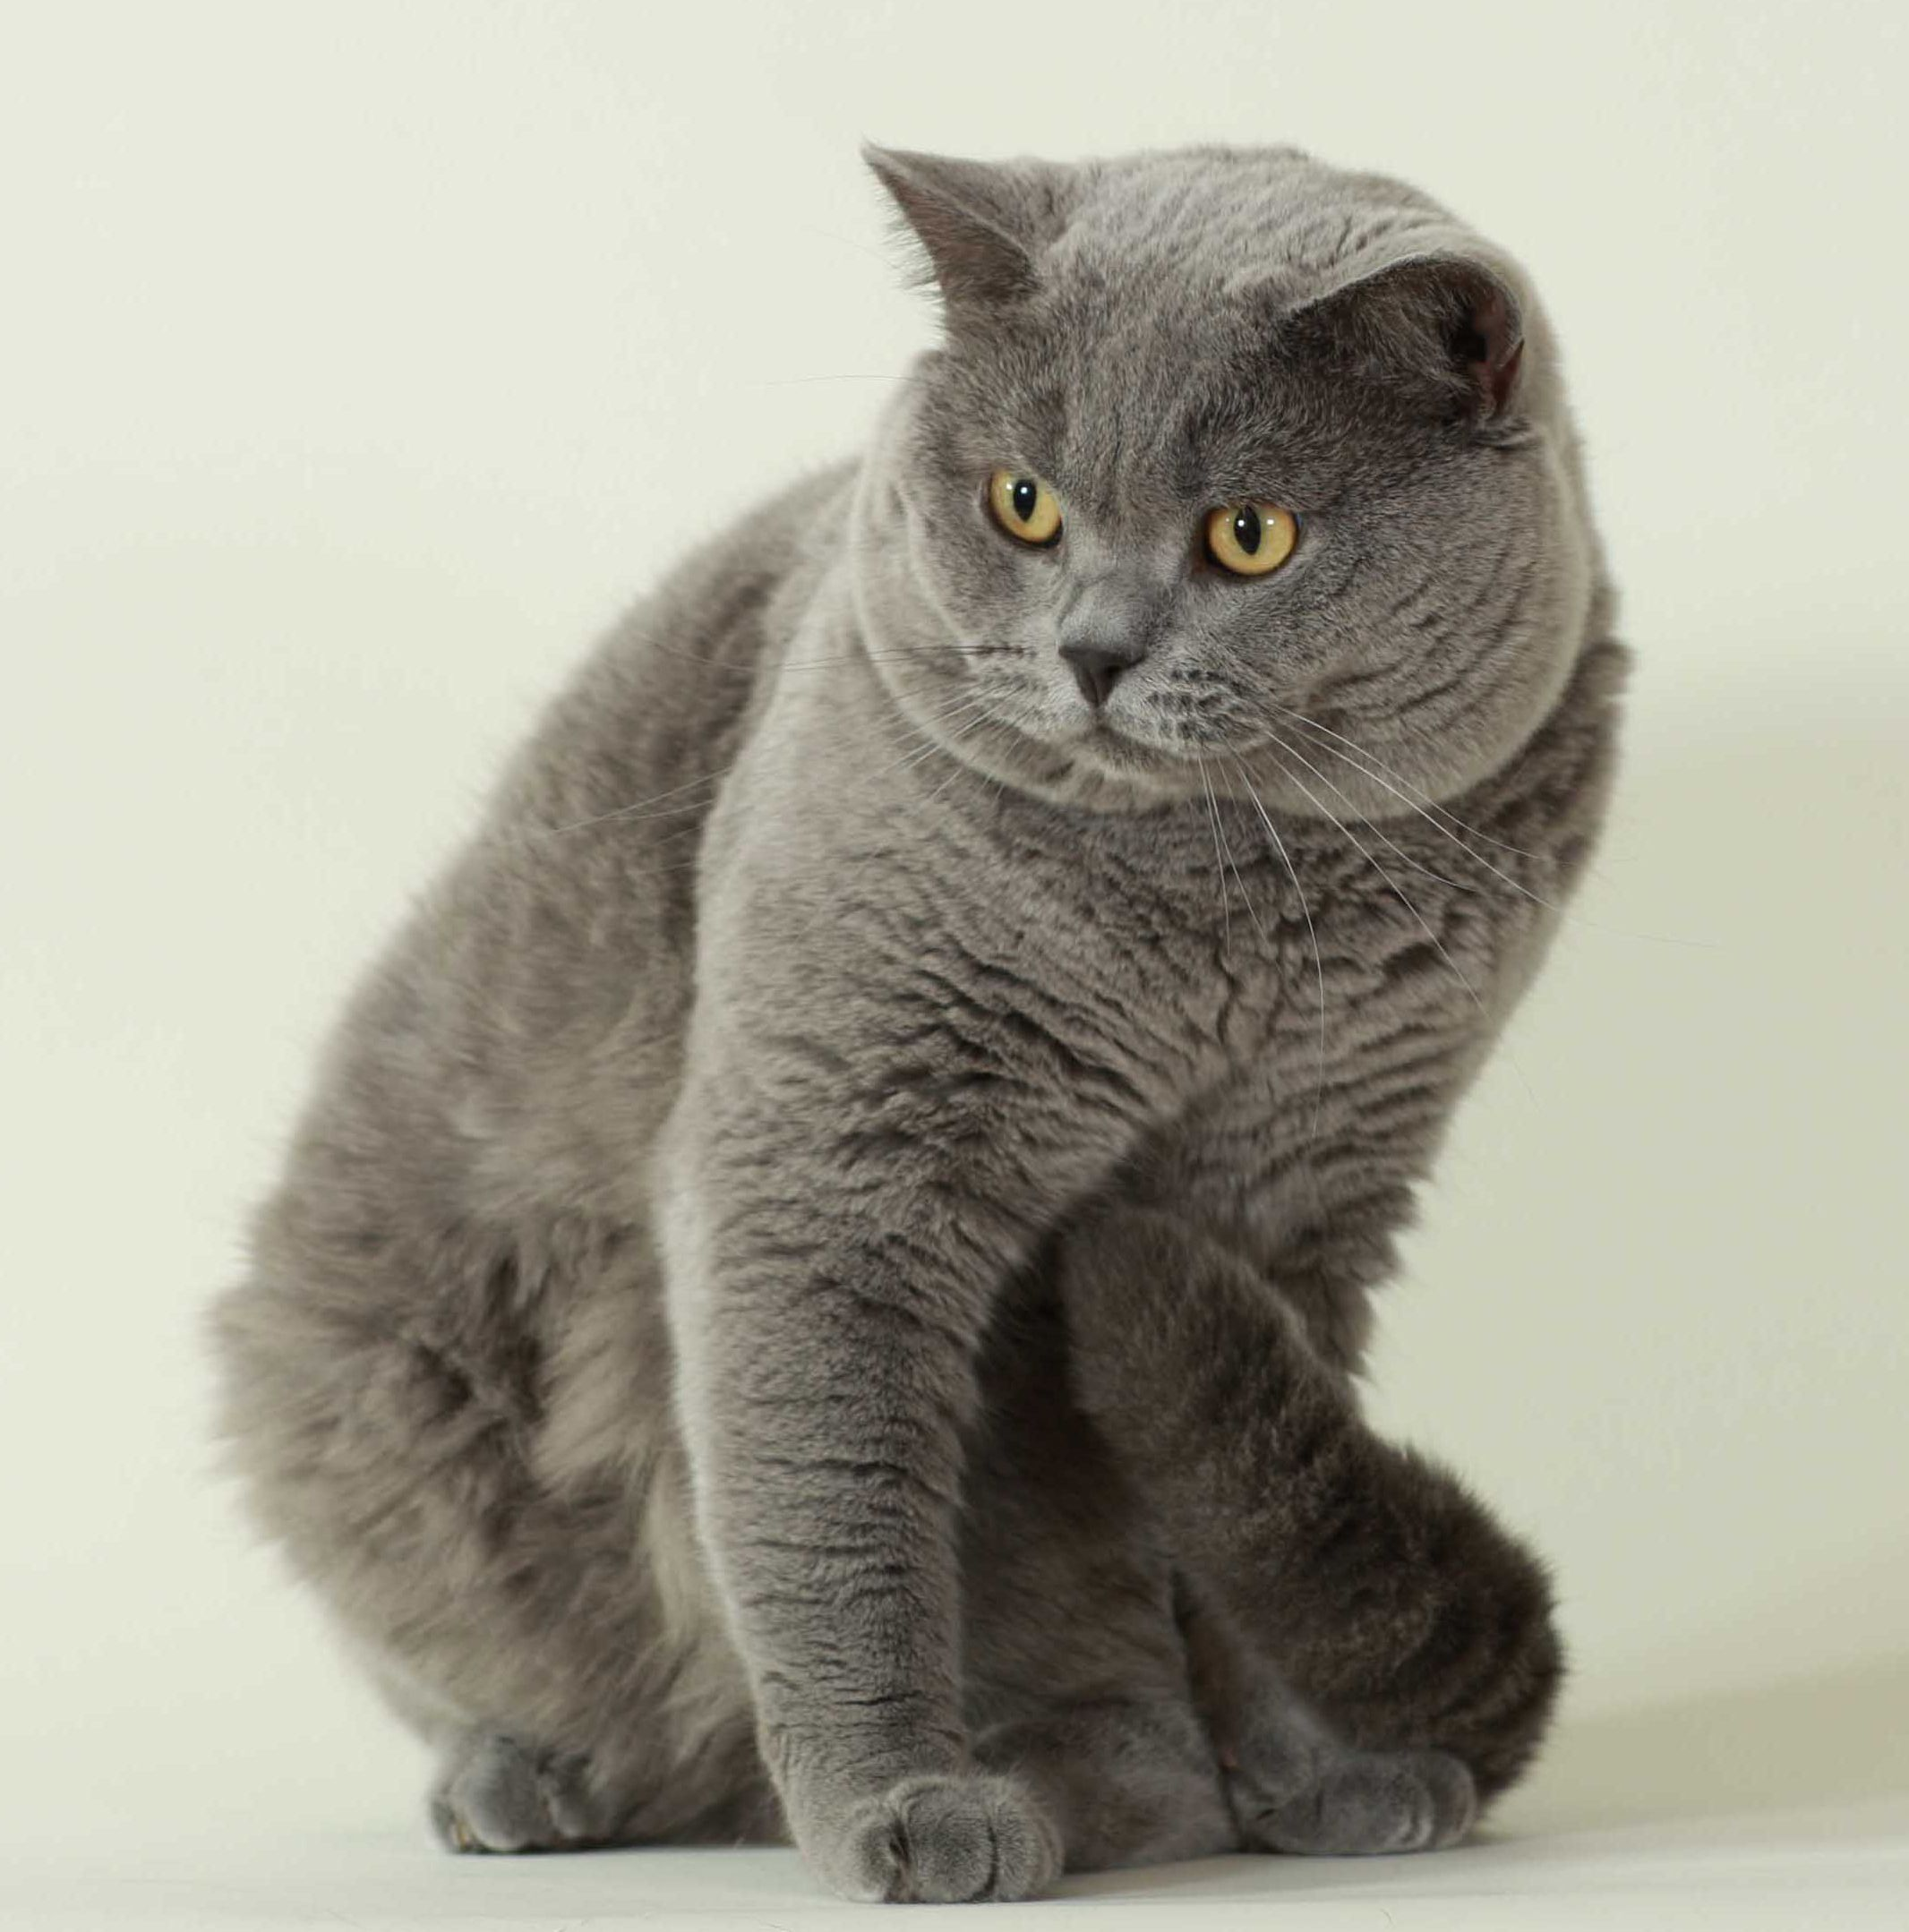 British Shorthair Calm And Quiet Not Prone To Acrobatics Or